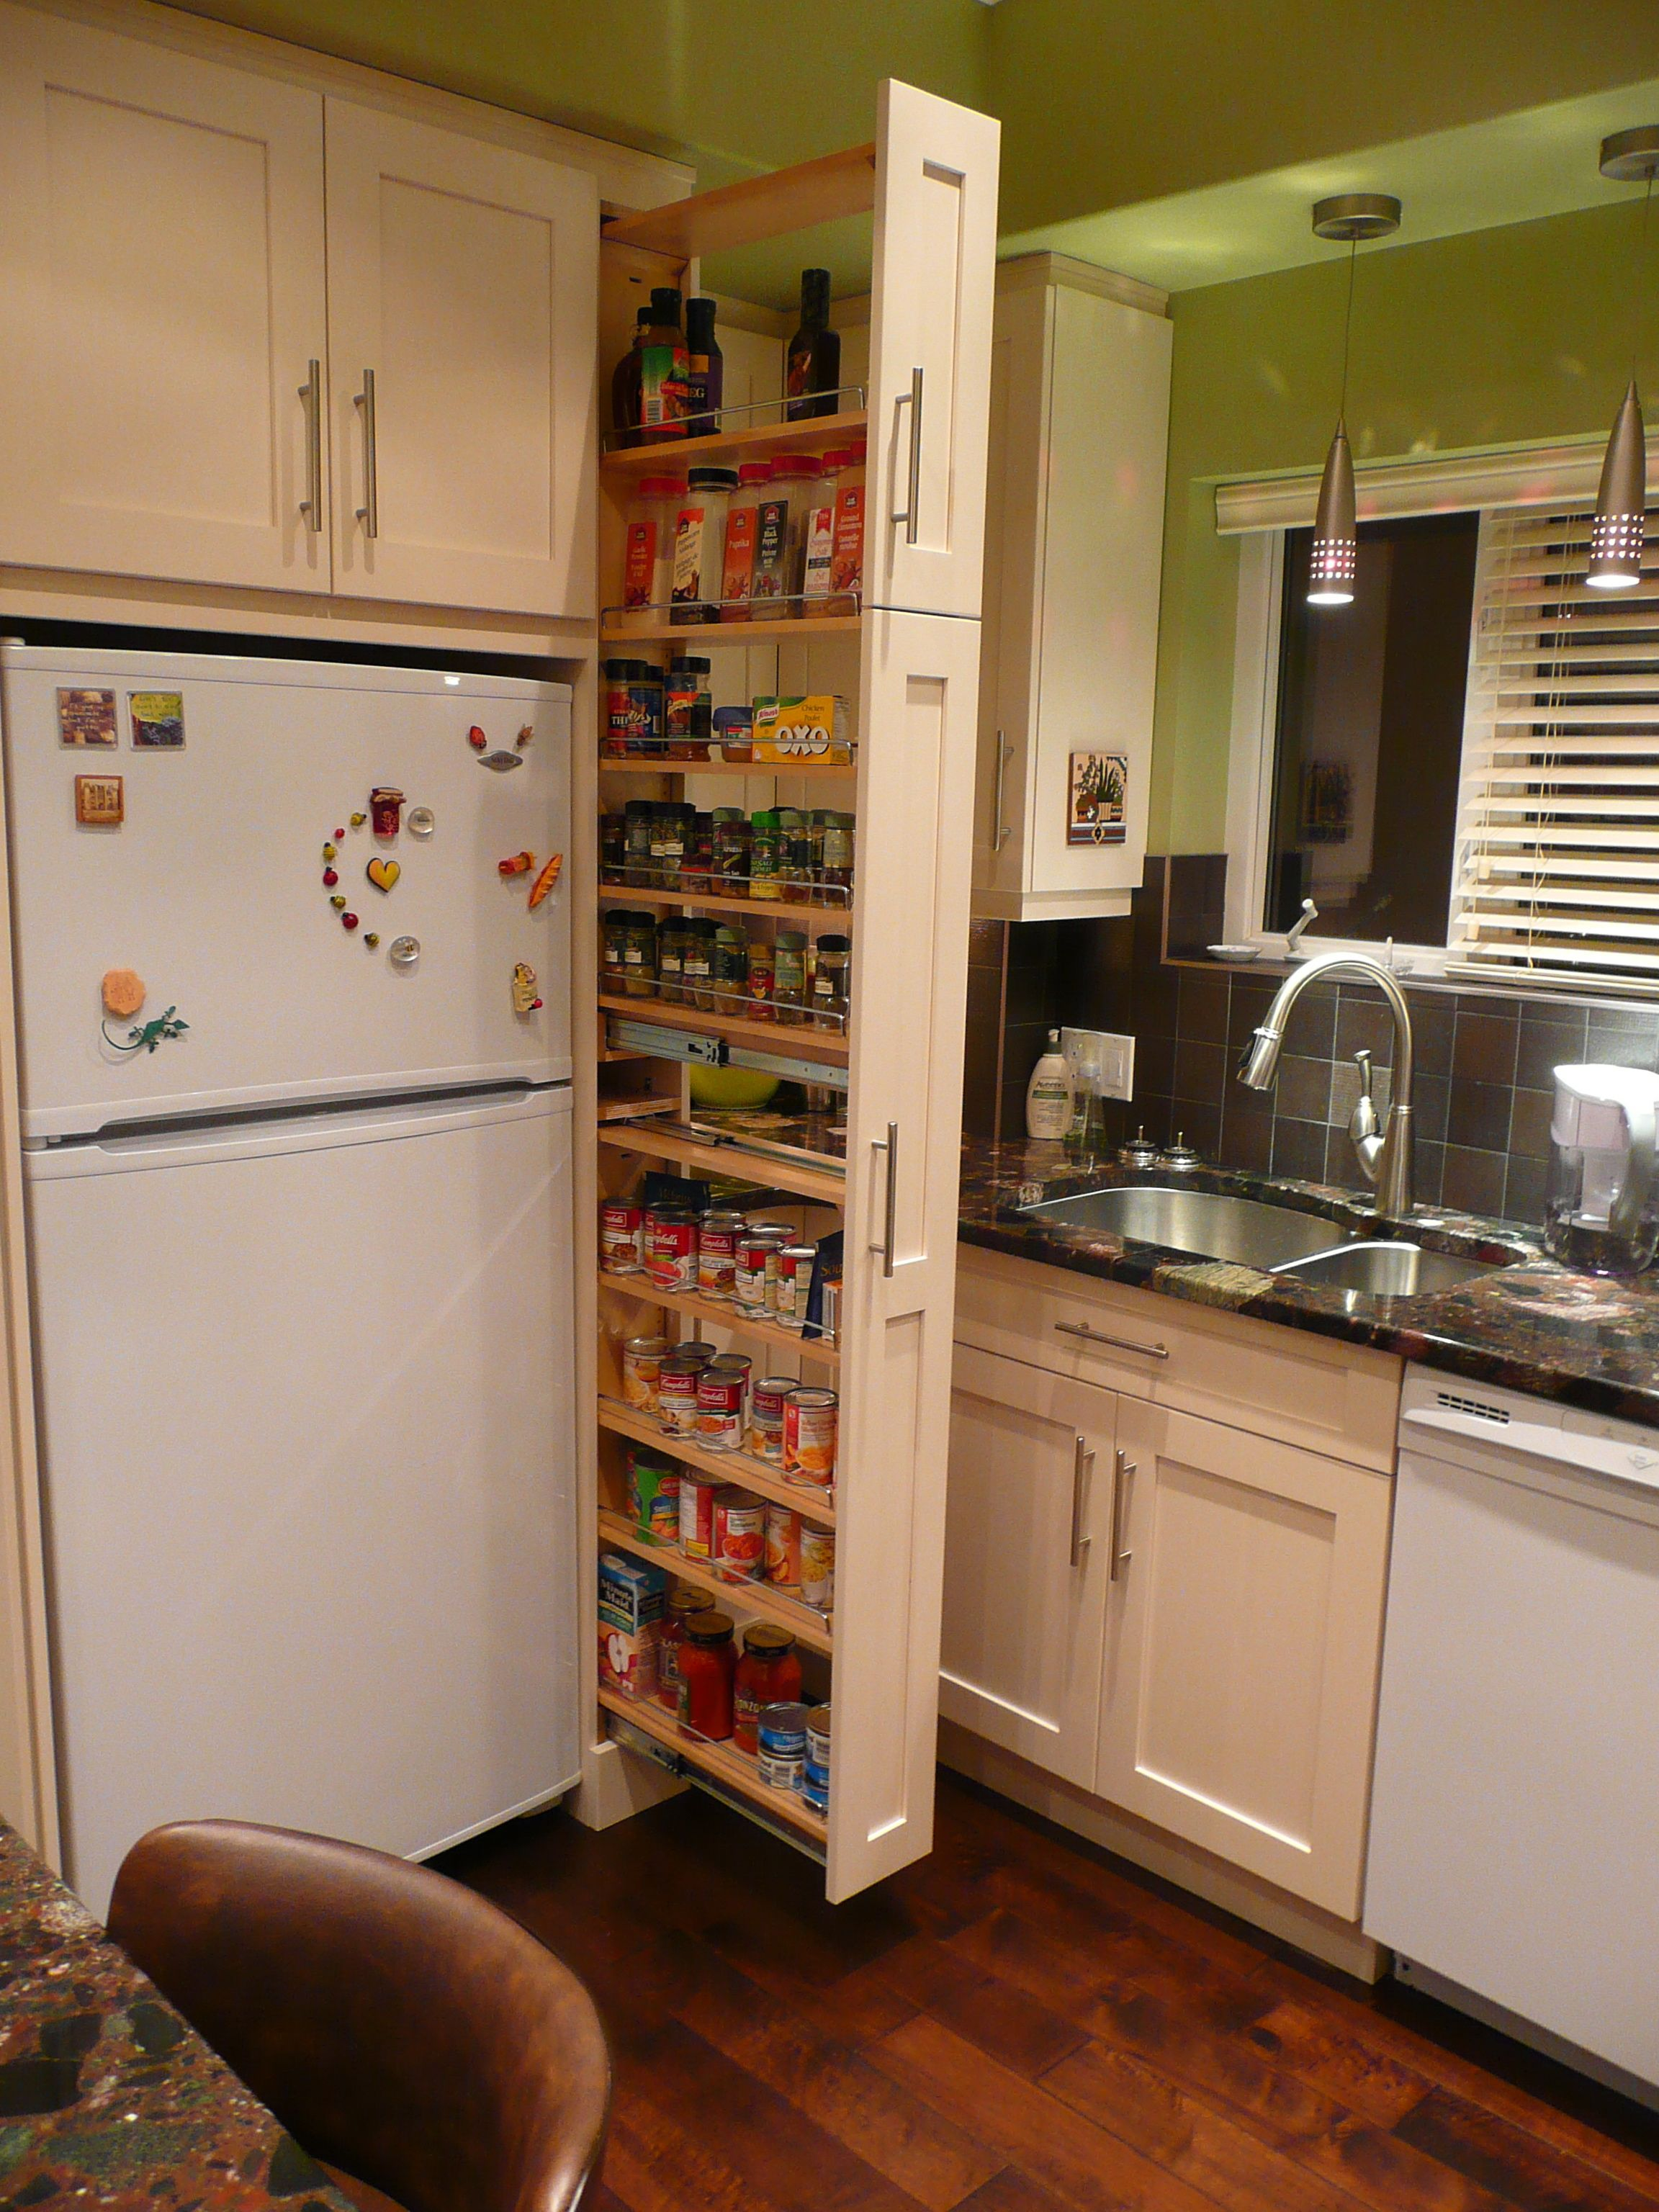 tall narrow kitchen cabinet sink white the beside fridge pulls out to reveal a